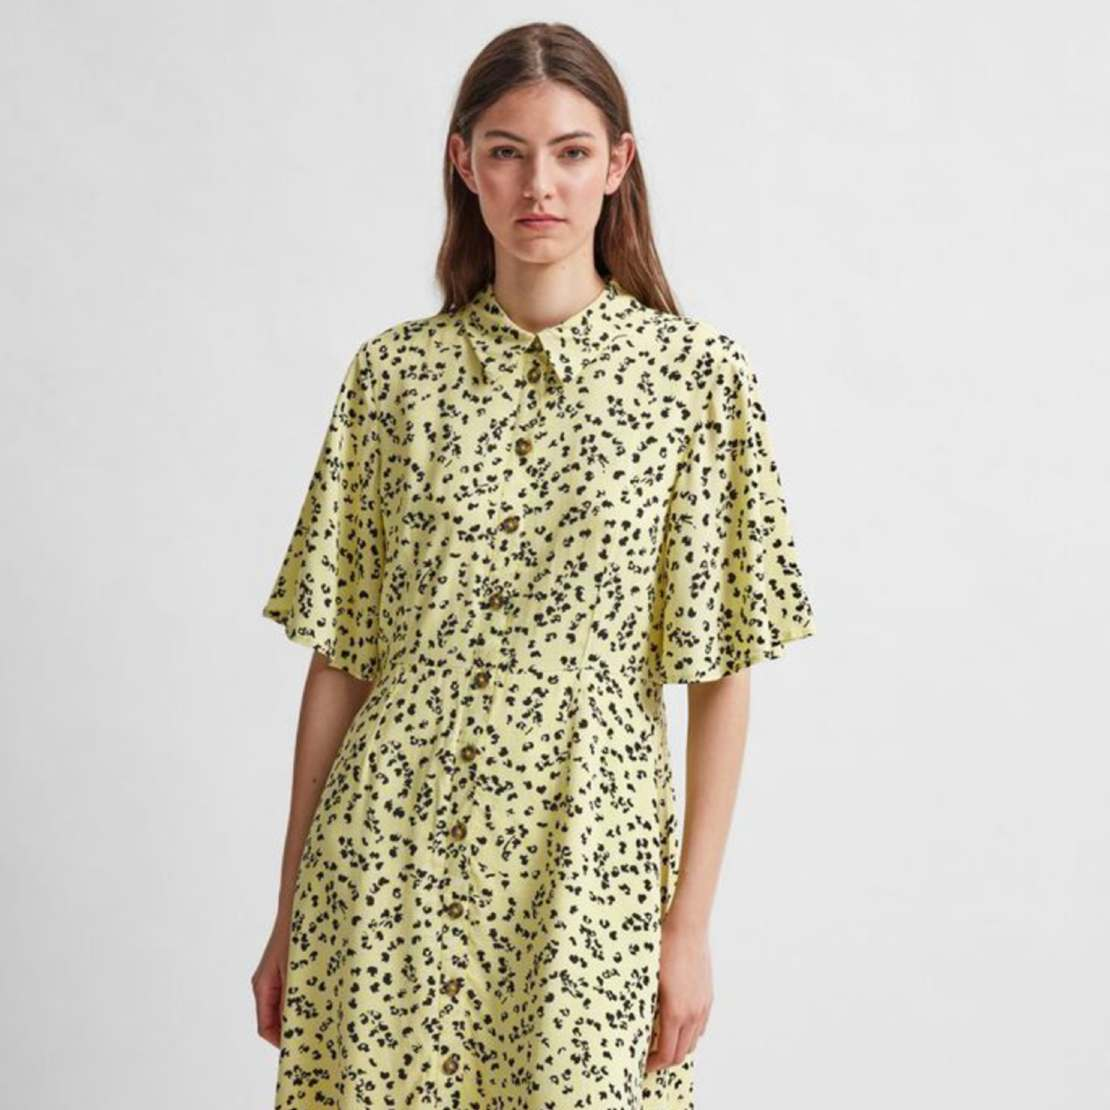 Selected Femme Yellow Printed Dress